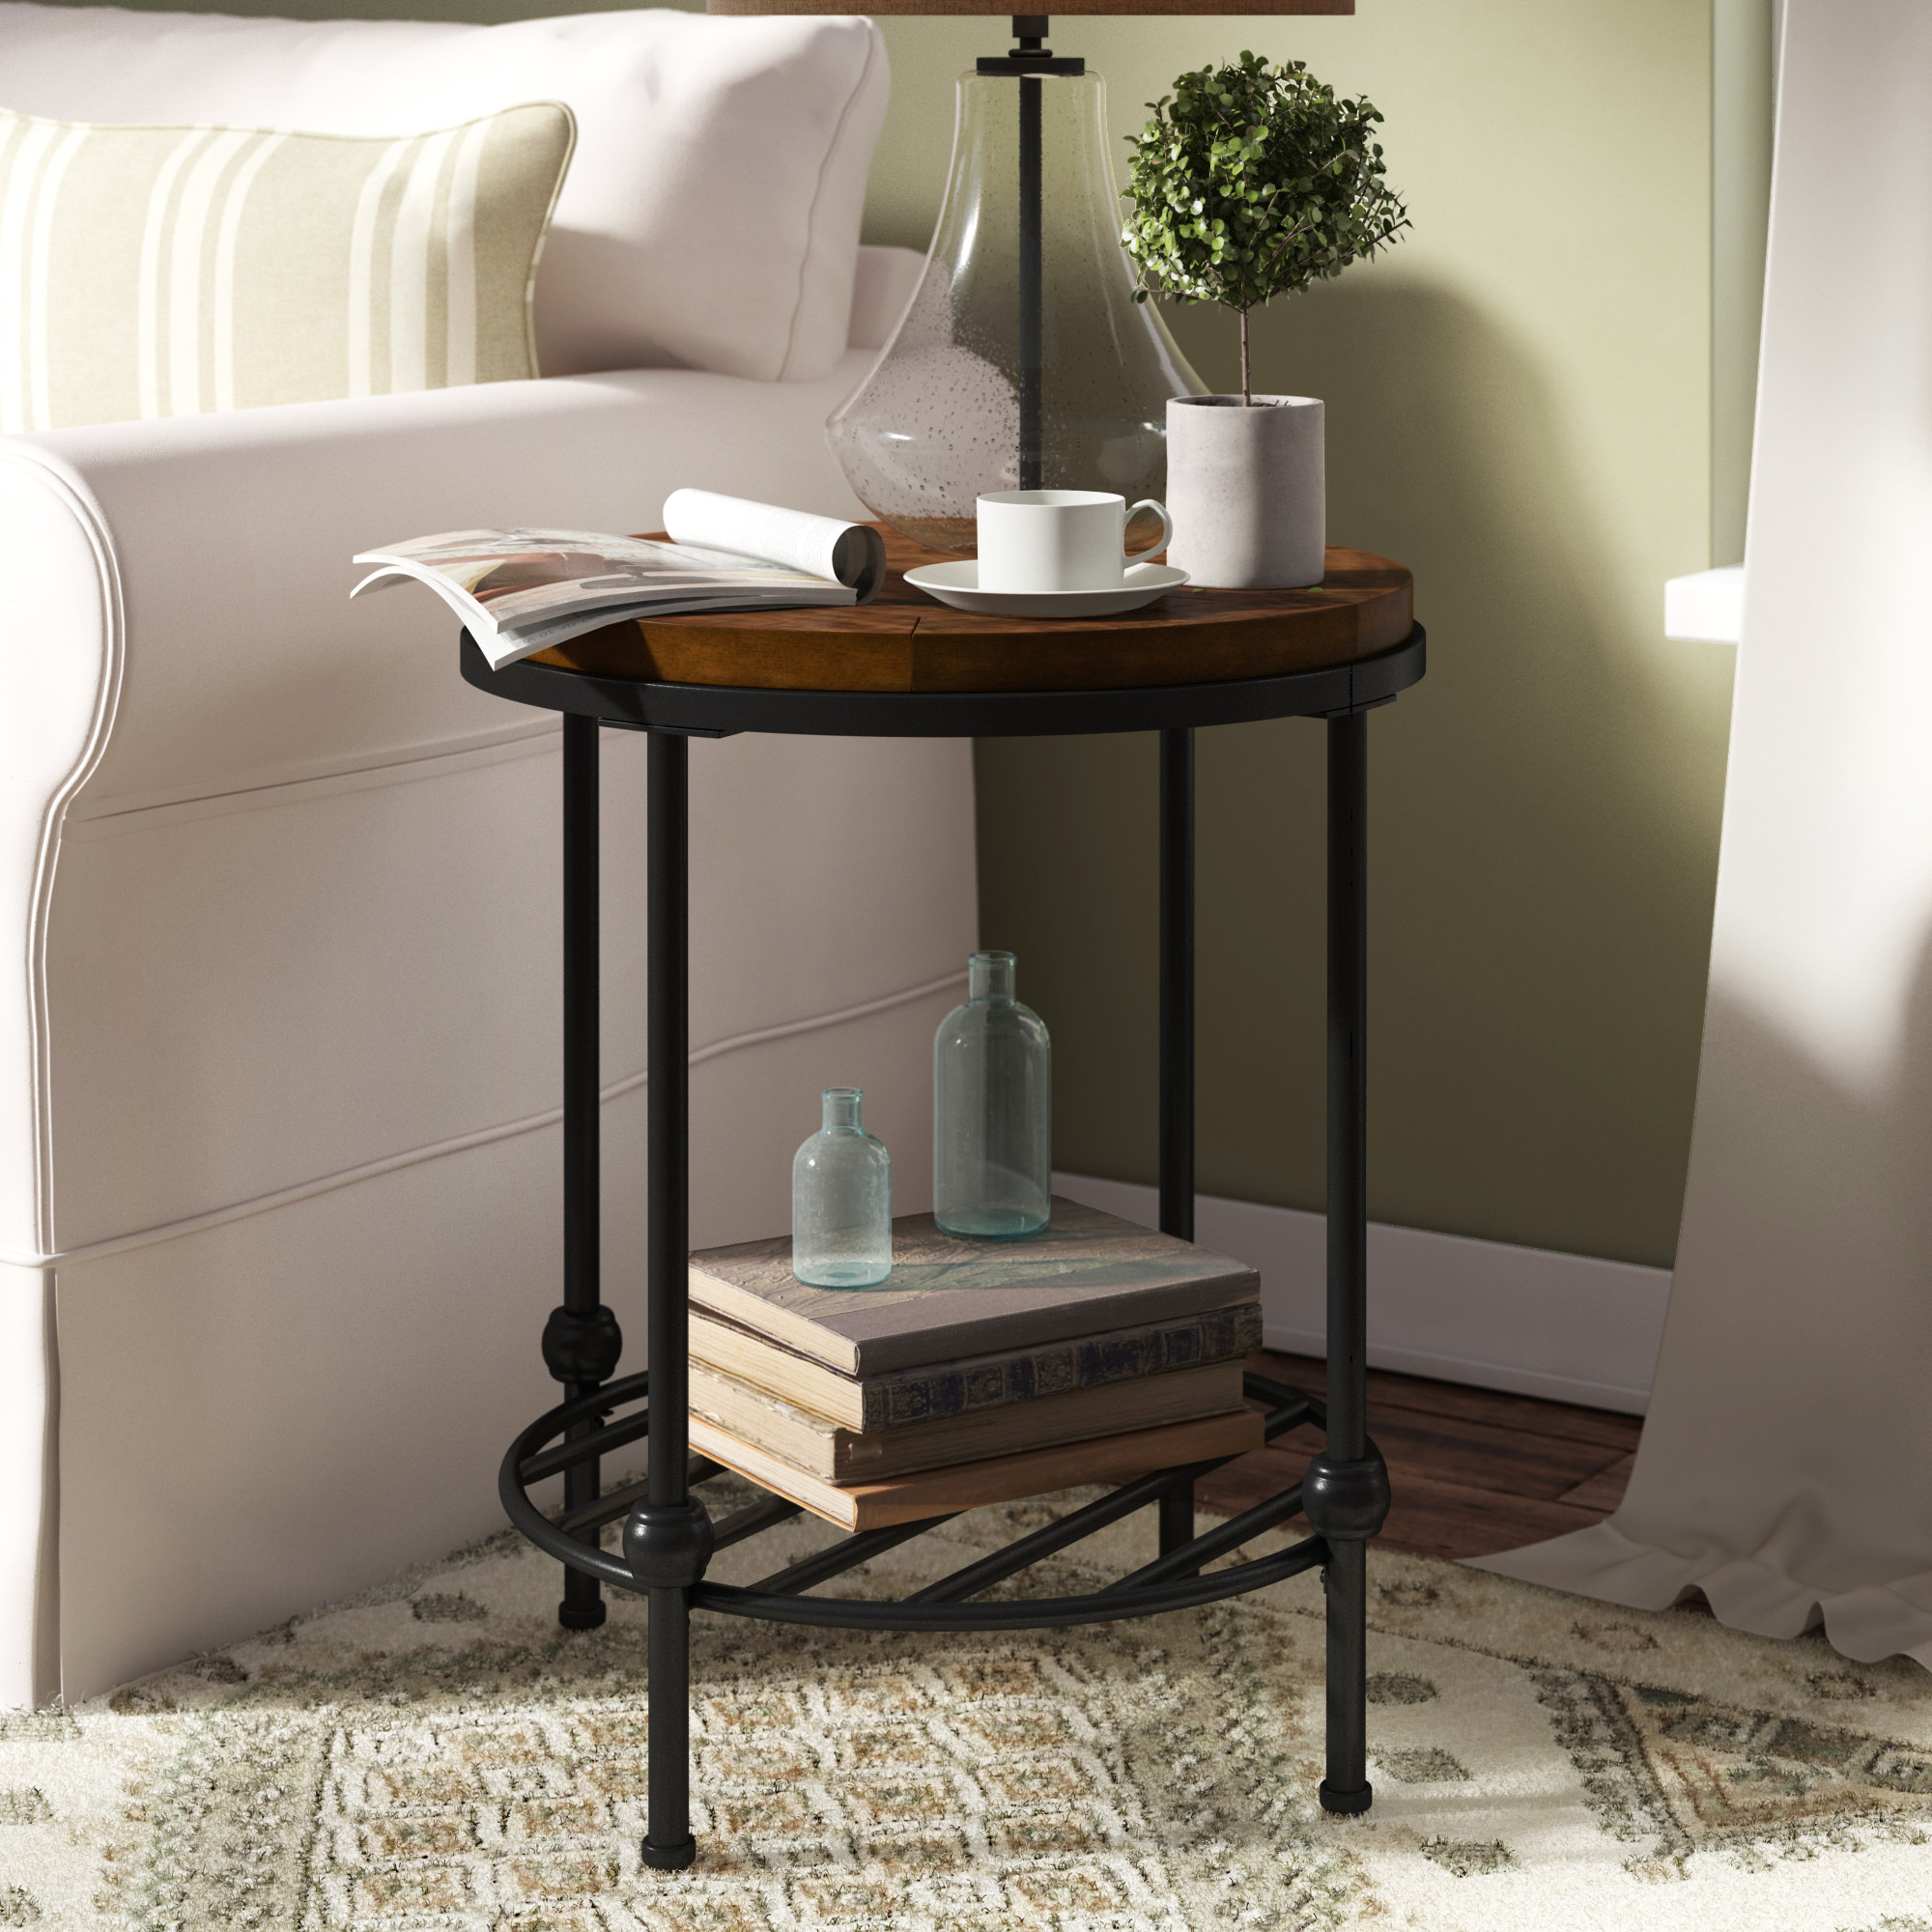 stellan end table reviews birch lane storage accent black room essentials dorm necessities target round decorative cover thin coffee hampton bay patio furniture cushions big lots